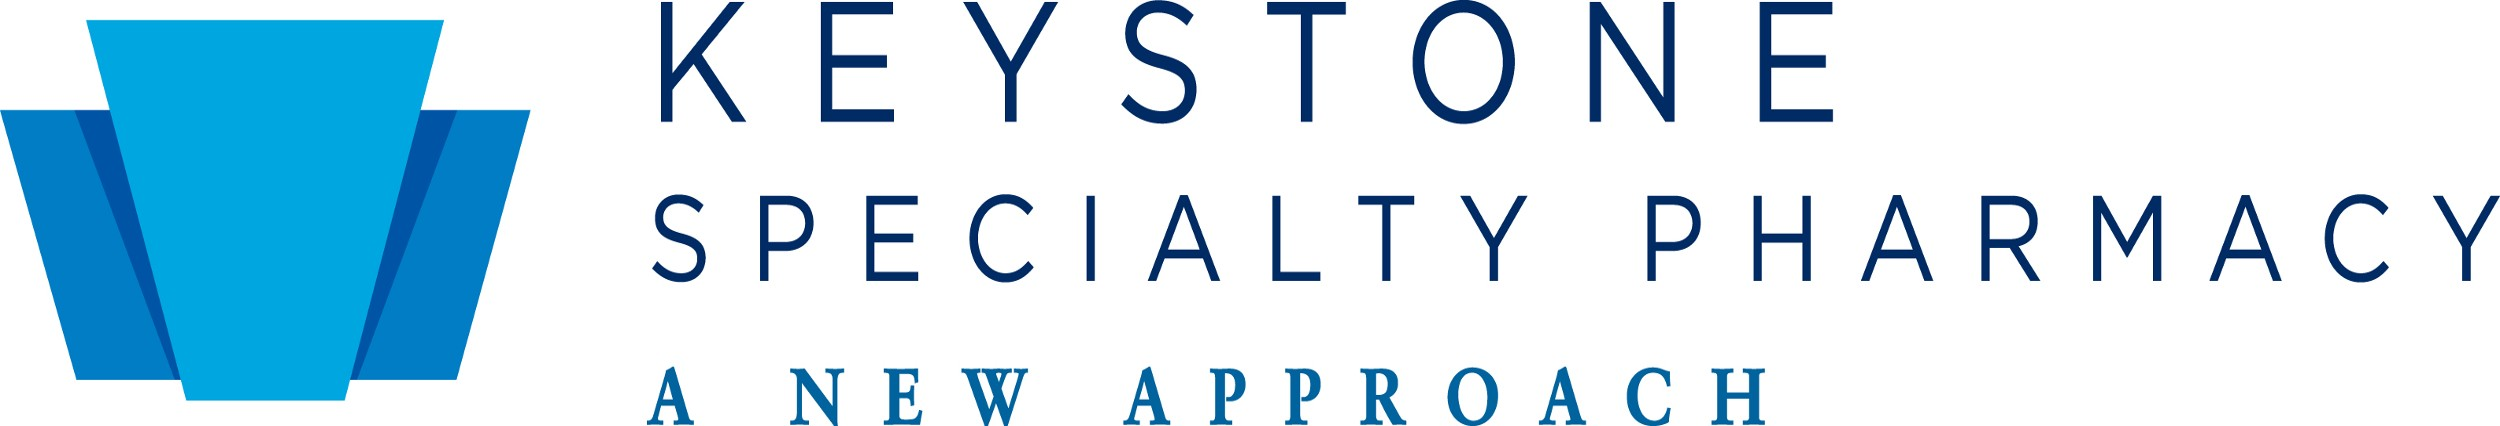 Keystone Specialty Pharmacy Logo